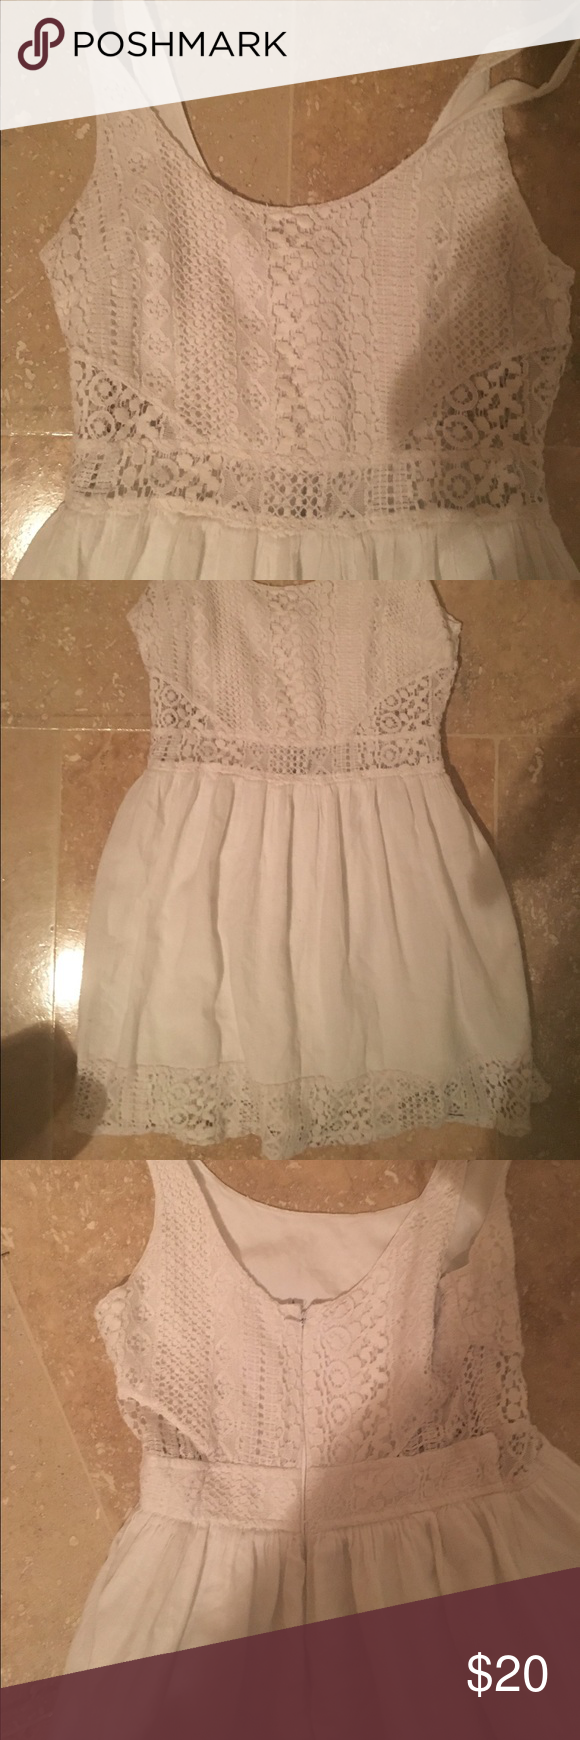 Hollister White Lace Cut Out Dress Super cute Hollister dress. It has a lace cut out at the waist, but does not show much skin at all. I have actually worn this to school with no problems. Size XS and TTS. I can model if need be but it is a bit small on me now. Perfect condition! Hollister Dresses